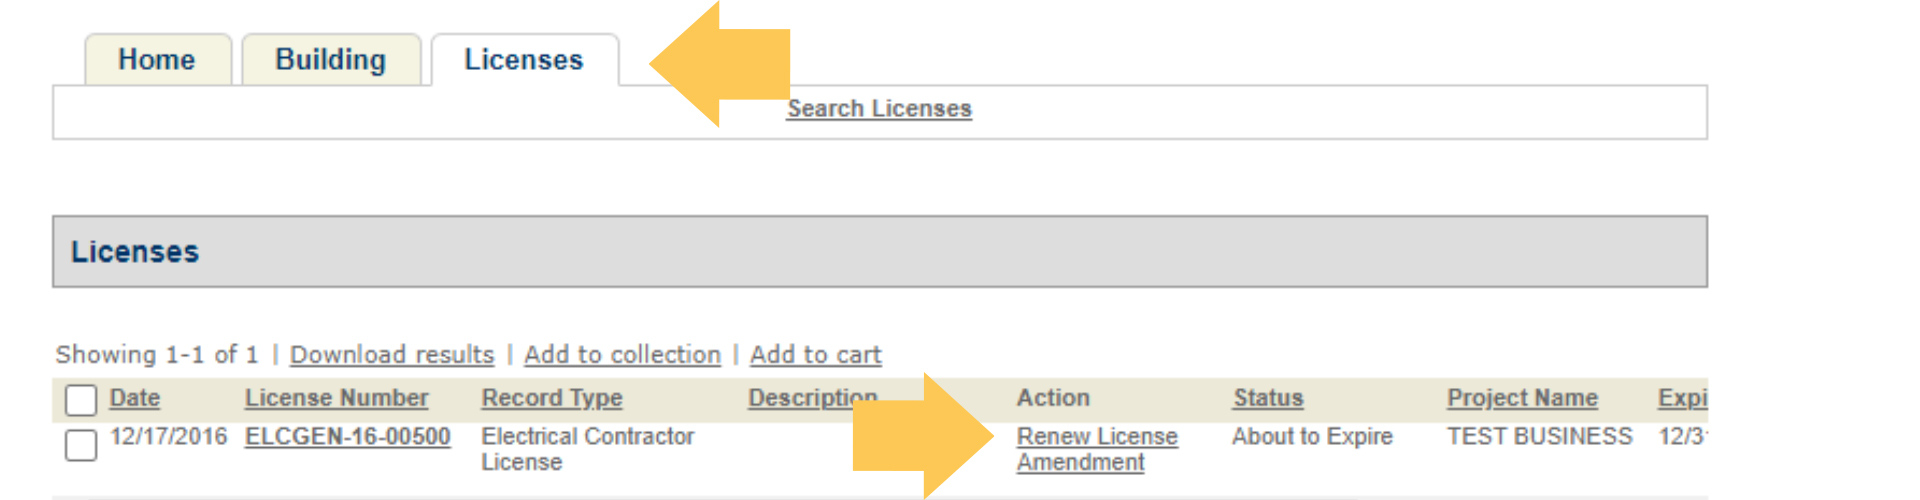 Toledo.oh.gov/permits screen shot of license renewal process